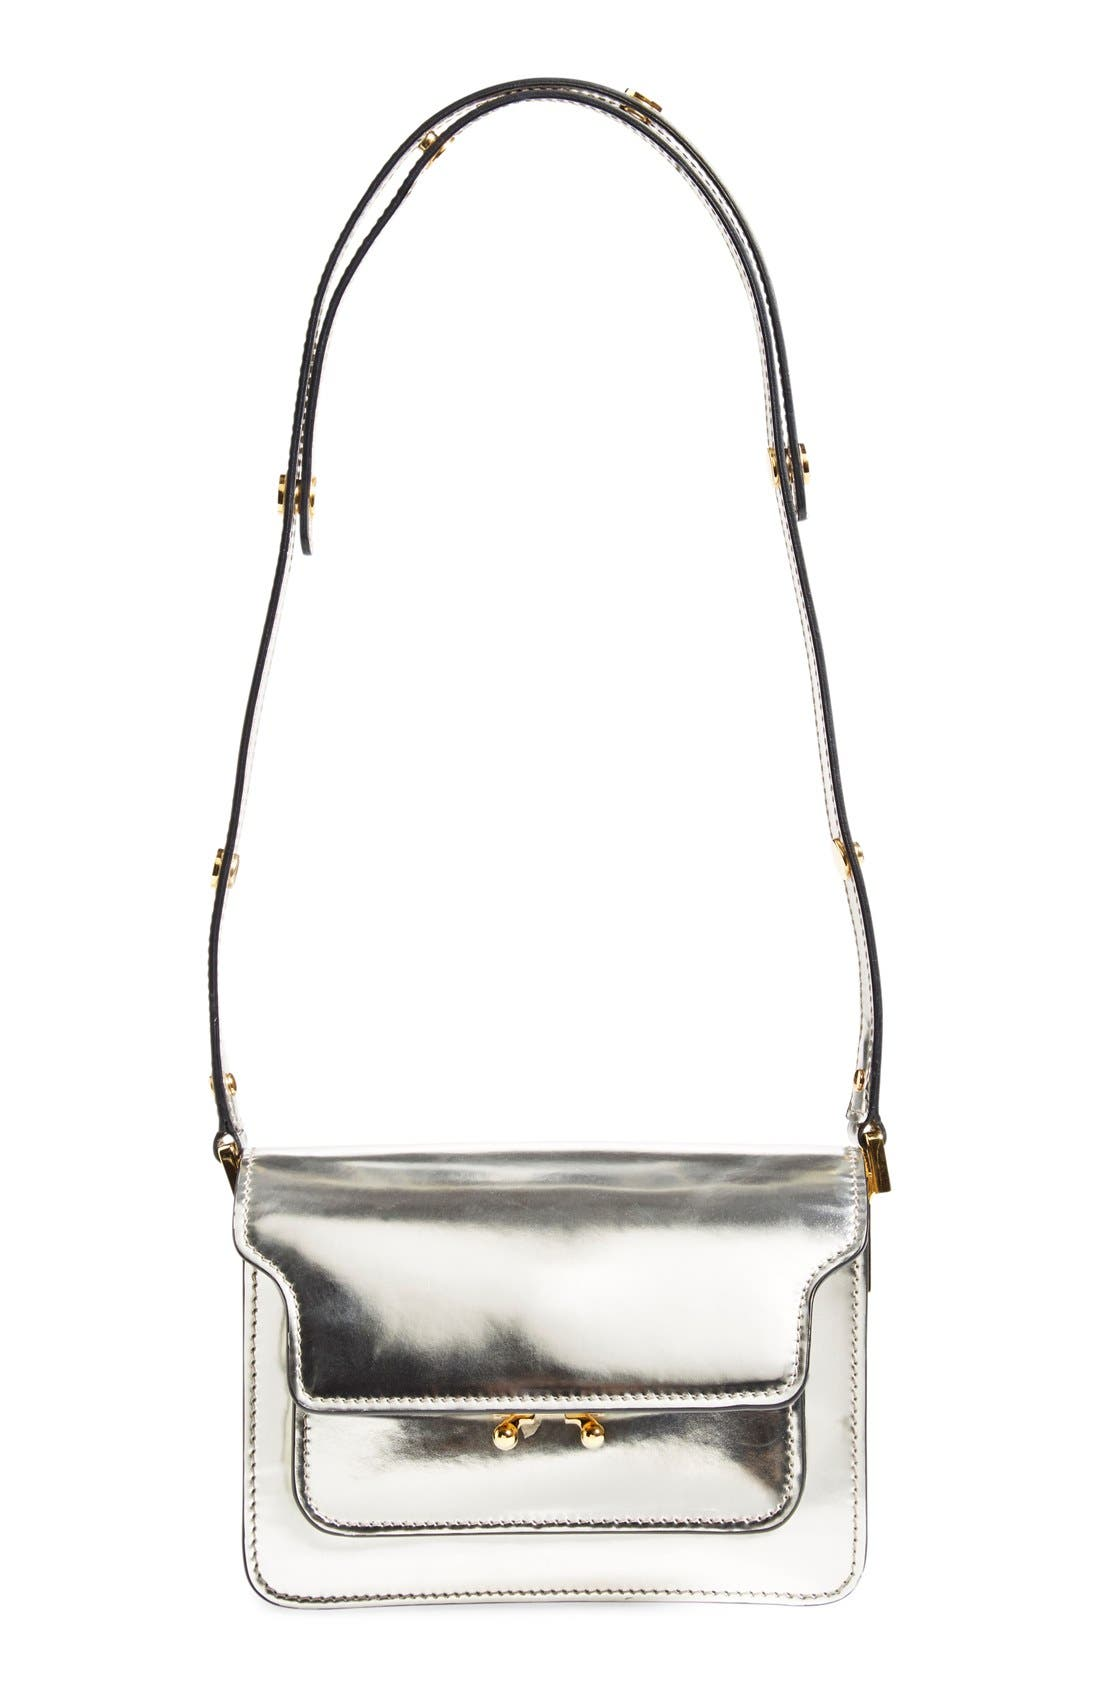 Main Image - Marni 'Mini Trunk' Metallic Leather Shoulder Bag